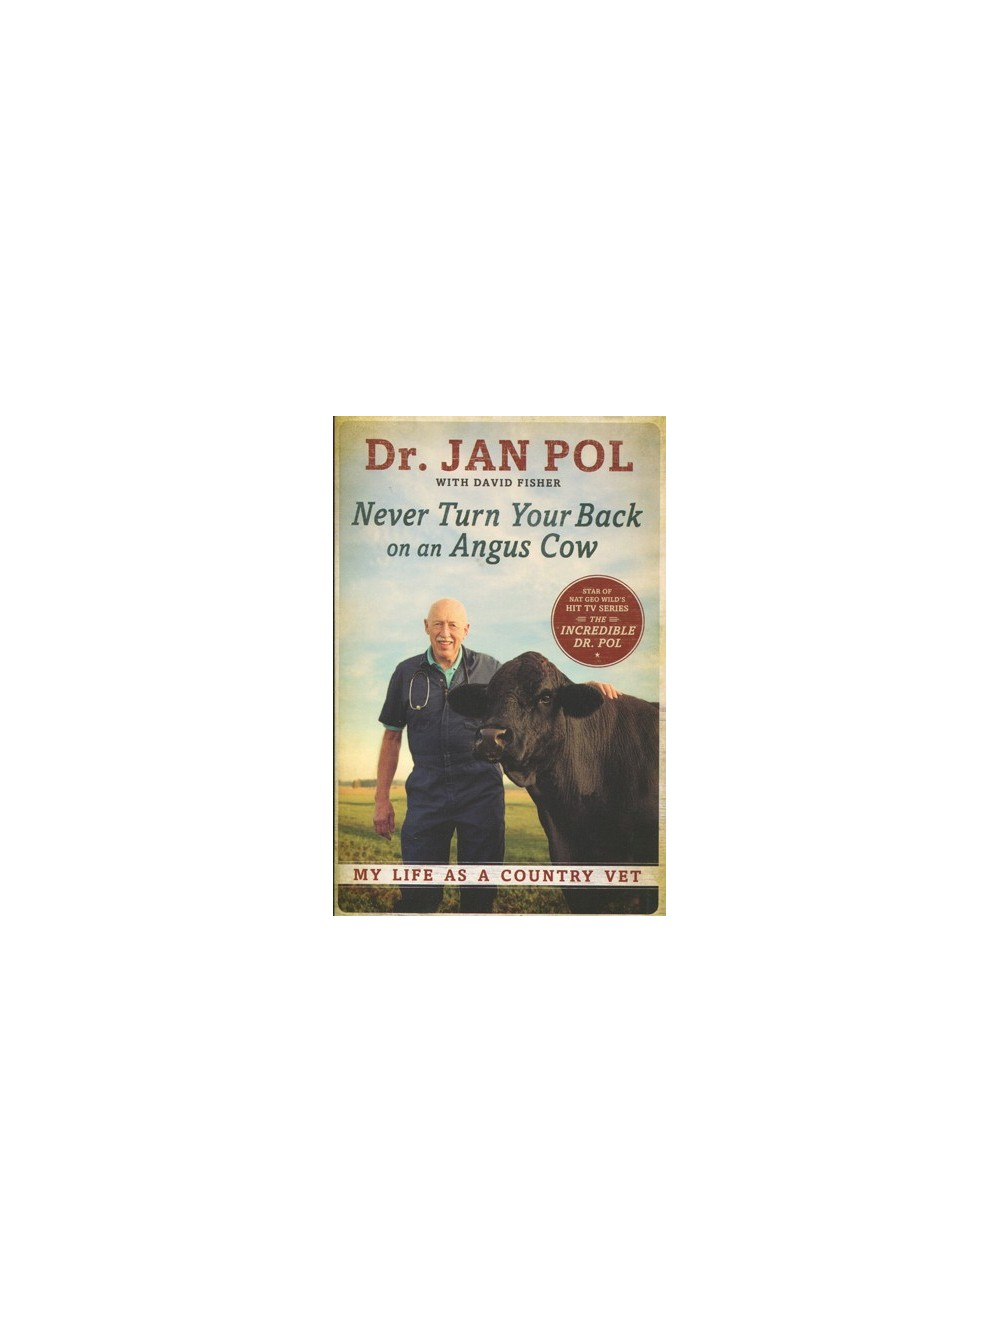 Never Turn Your Back on an Angus Cow - Books for Animal Lovers